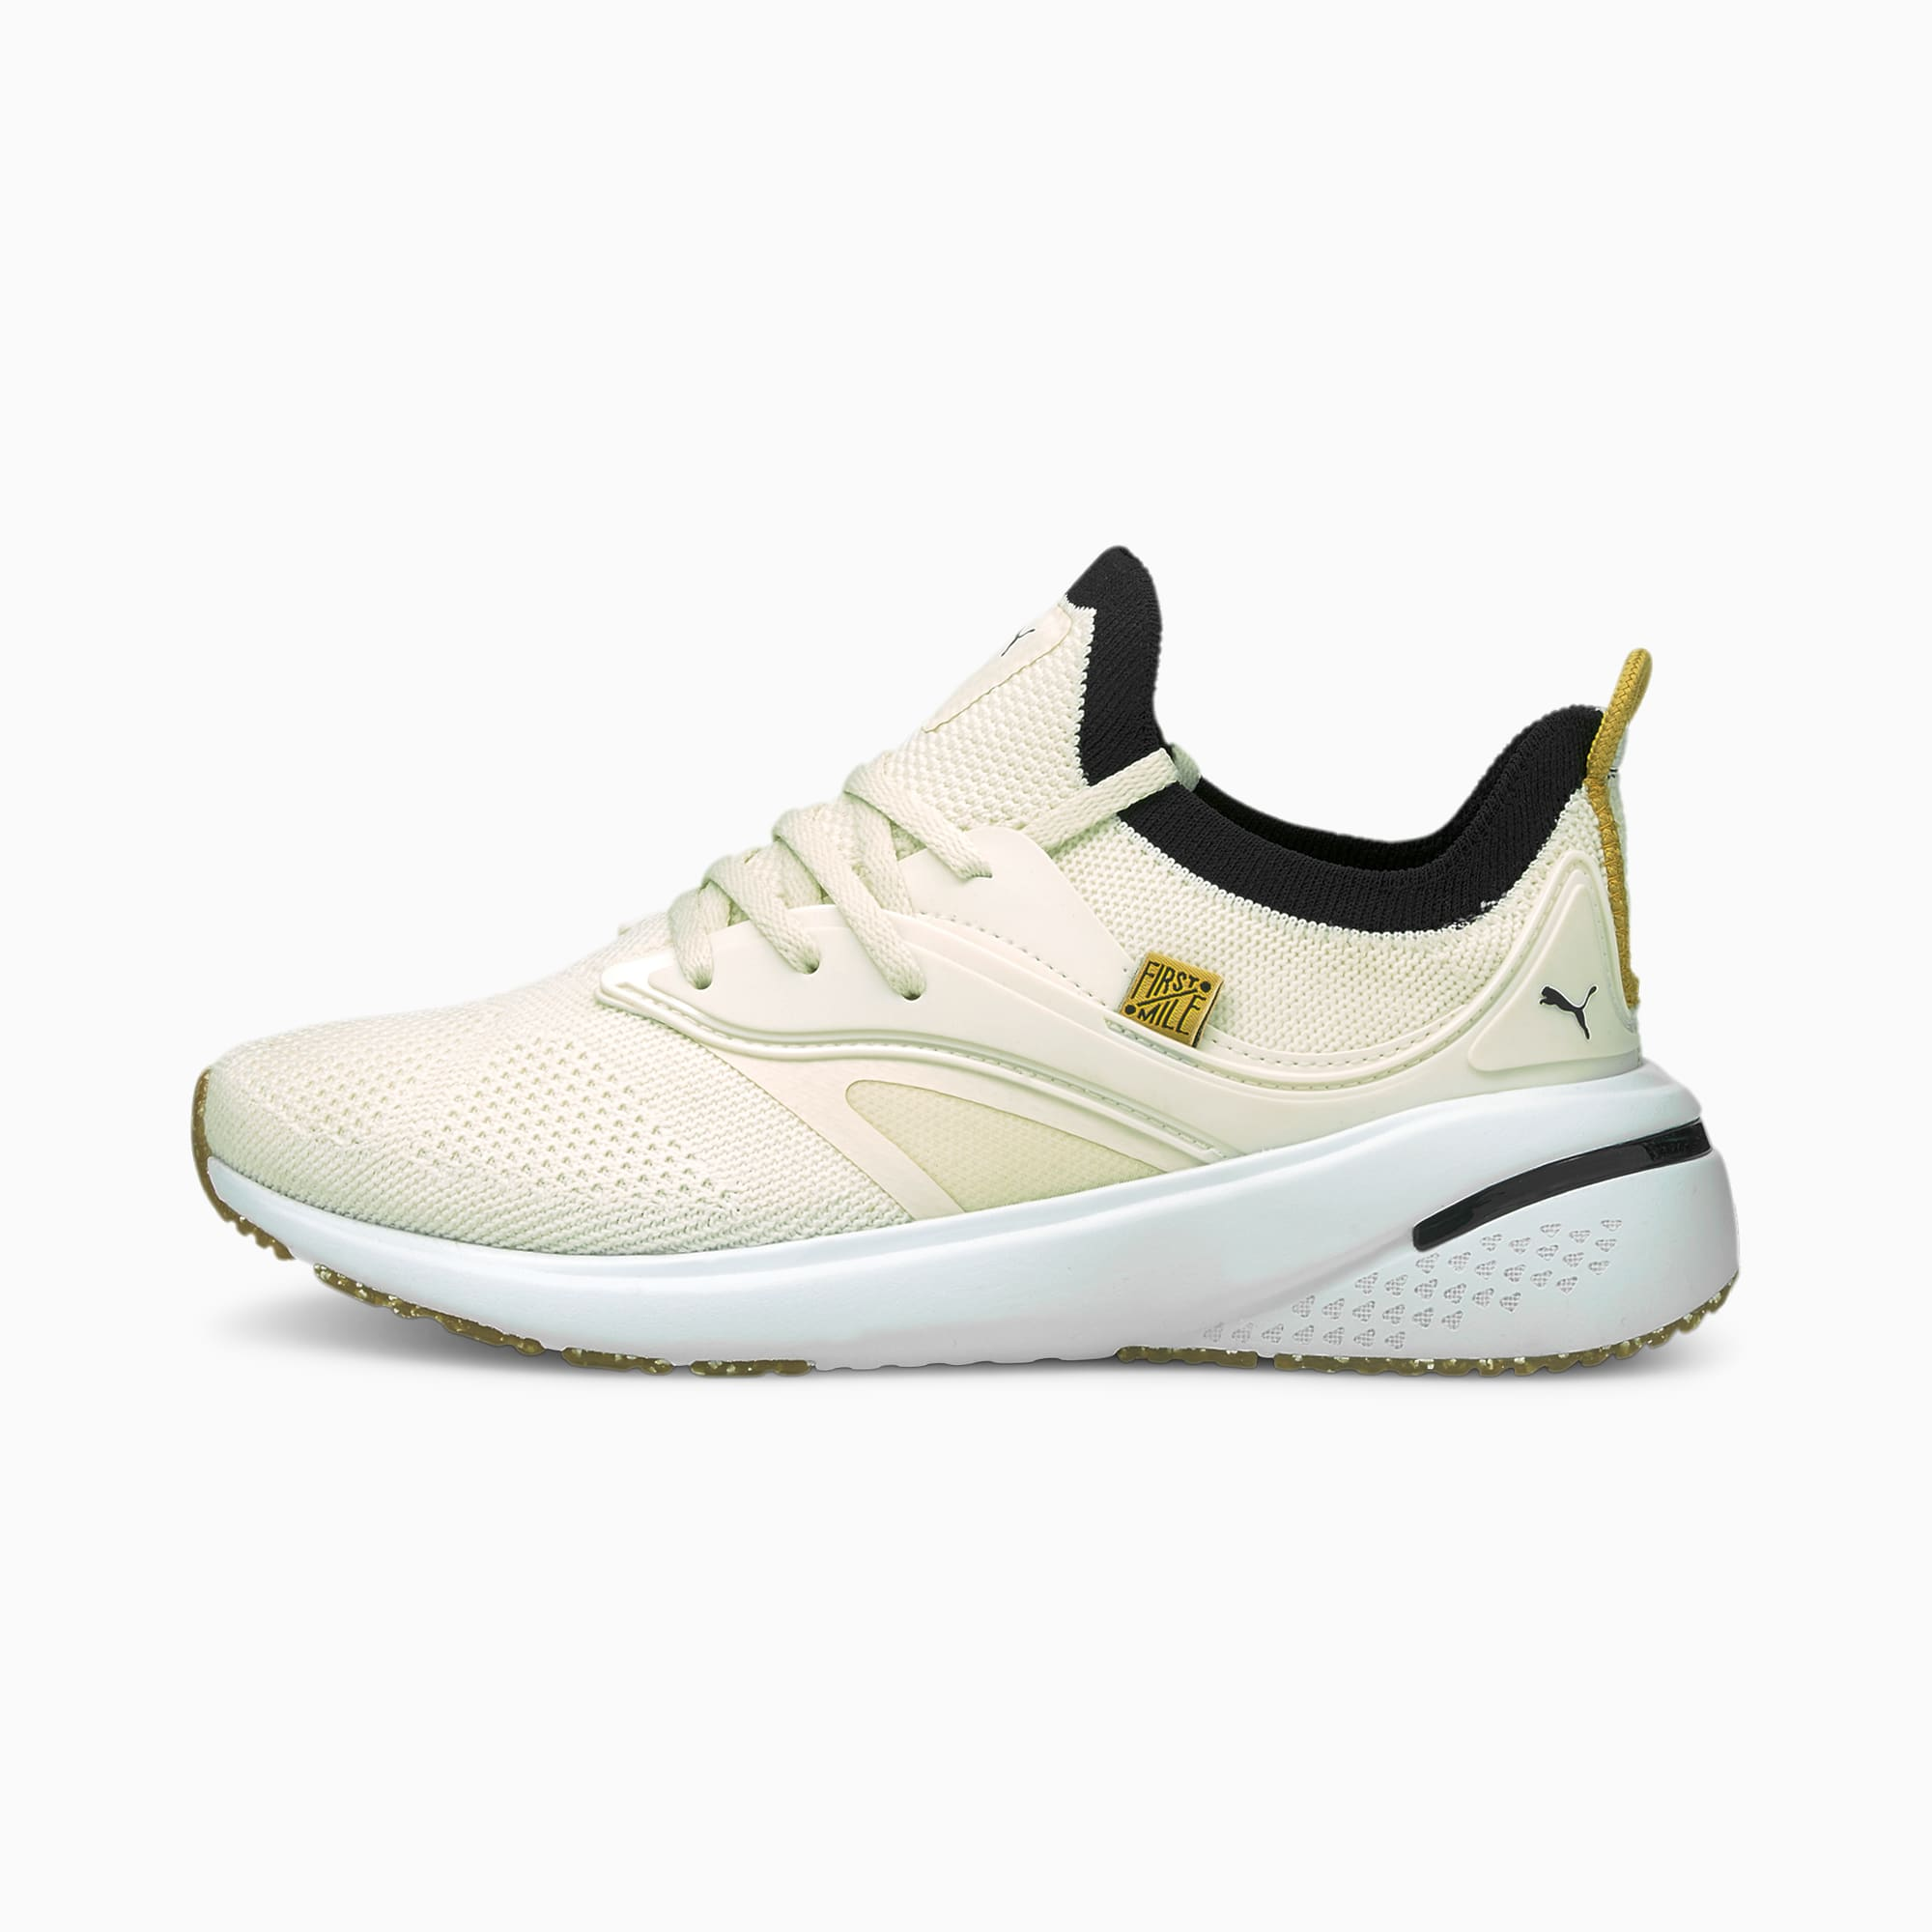 PUMA x FIRST MILE Forever XT Utility Women's Training Shoes